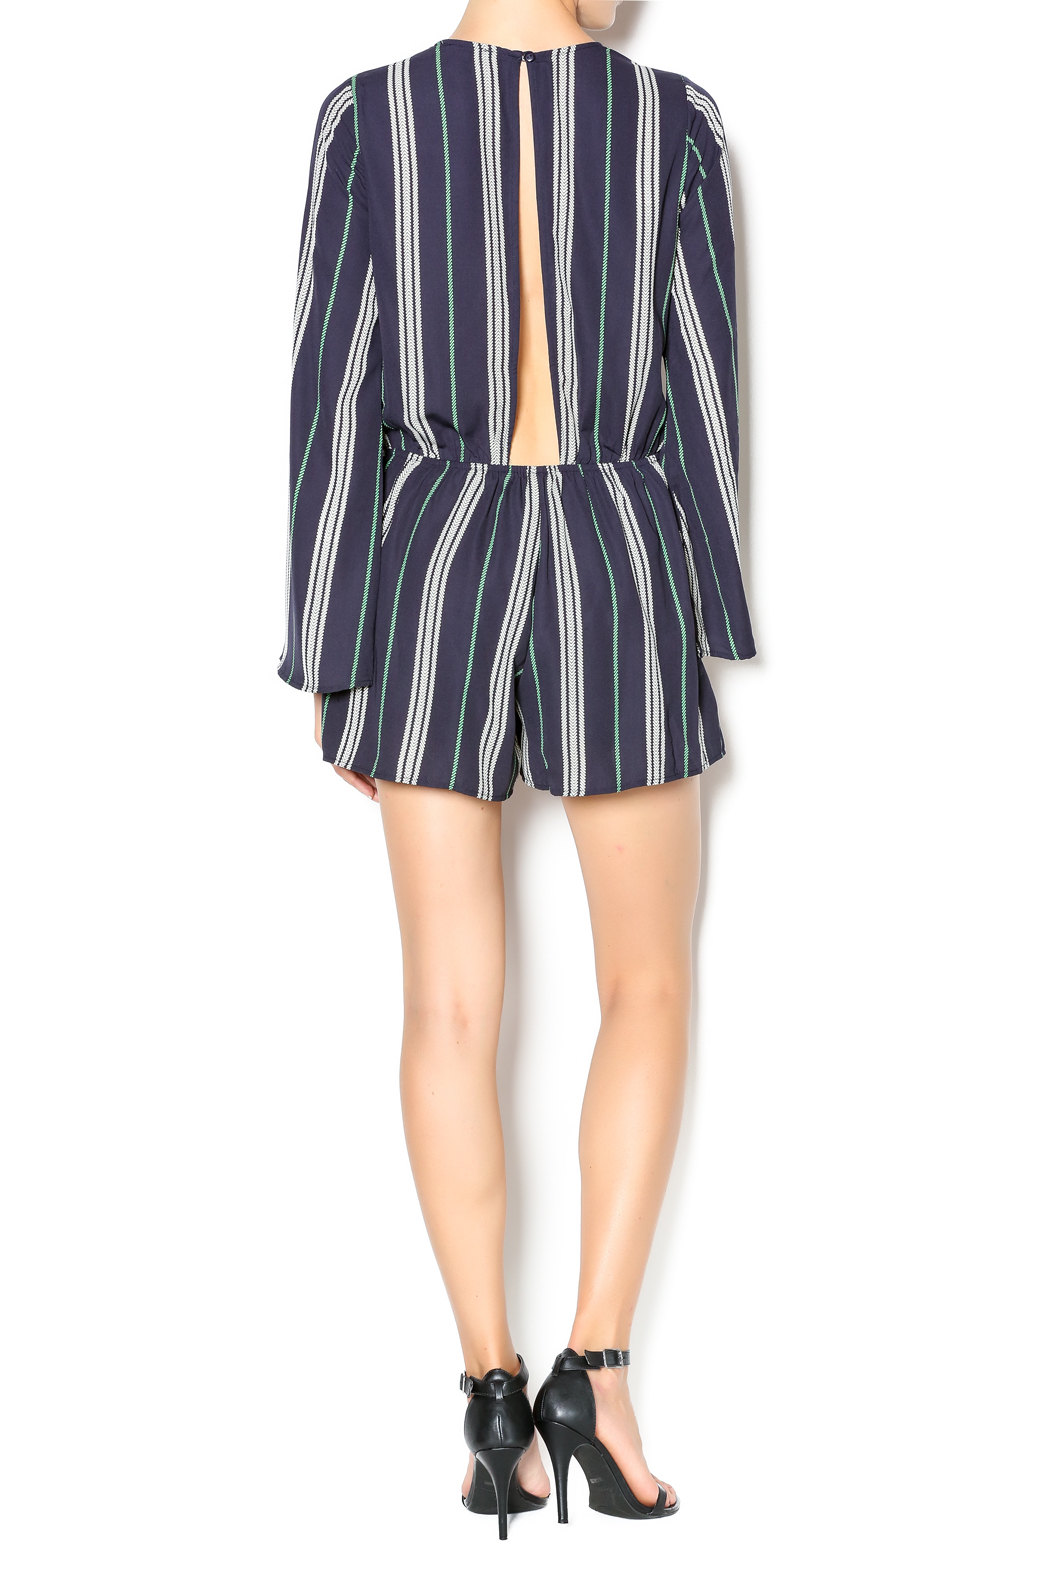 Illa Illa Navy Striped Romper - Side Cropped Image